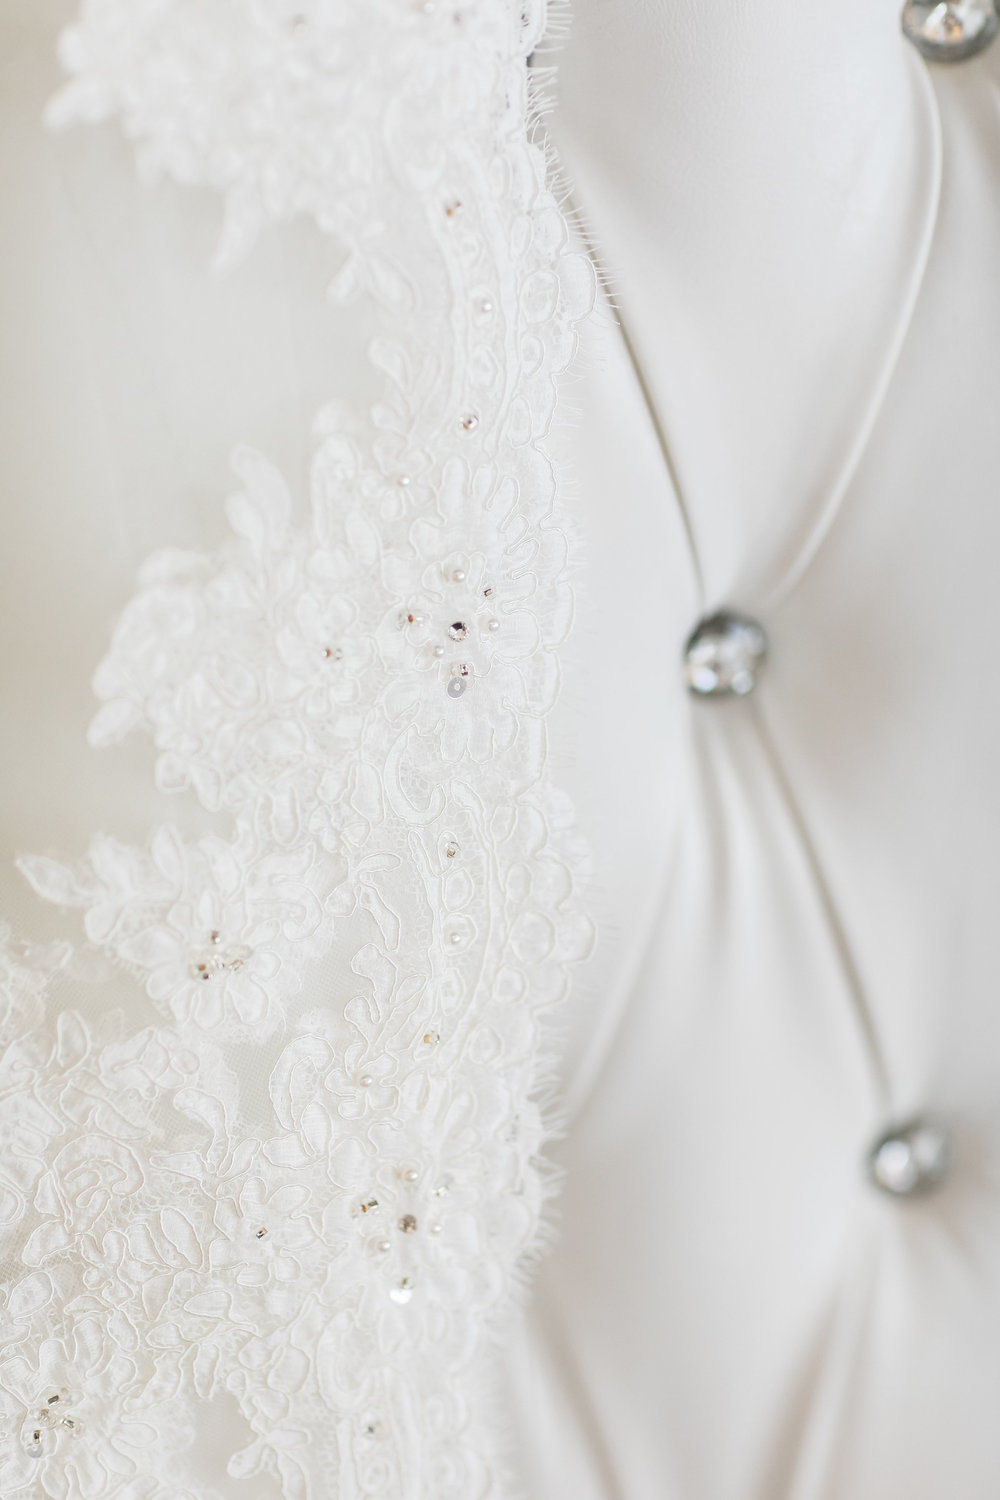 Photo of Luxury Wedding Veil on a King and Queen White Chair.jpg